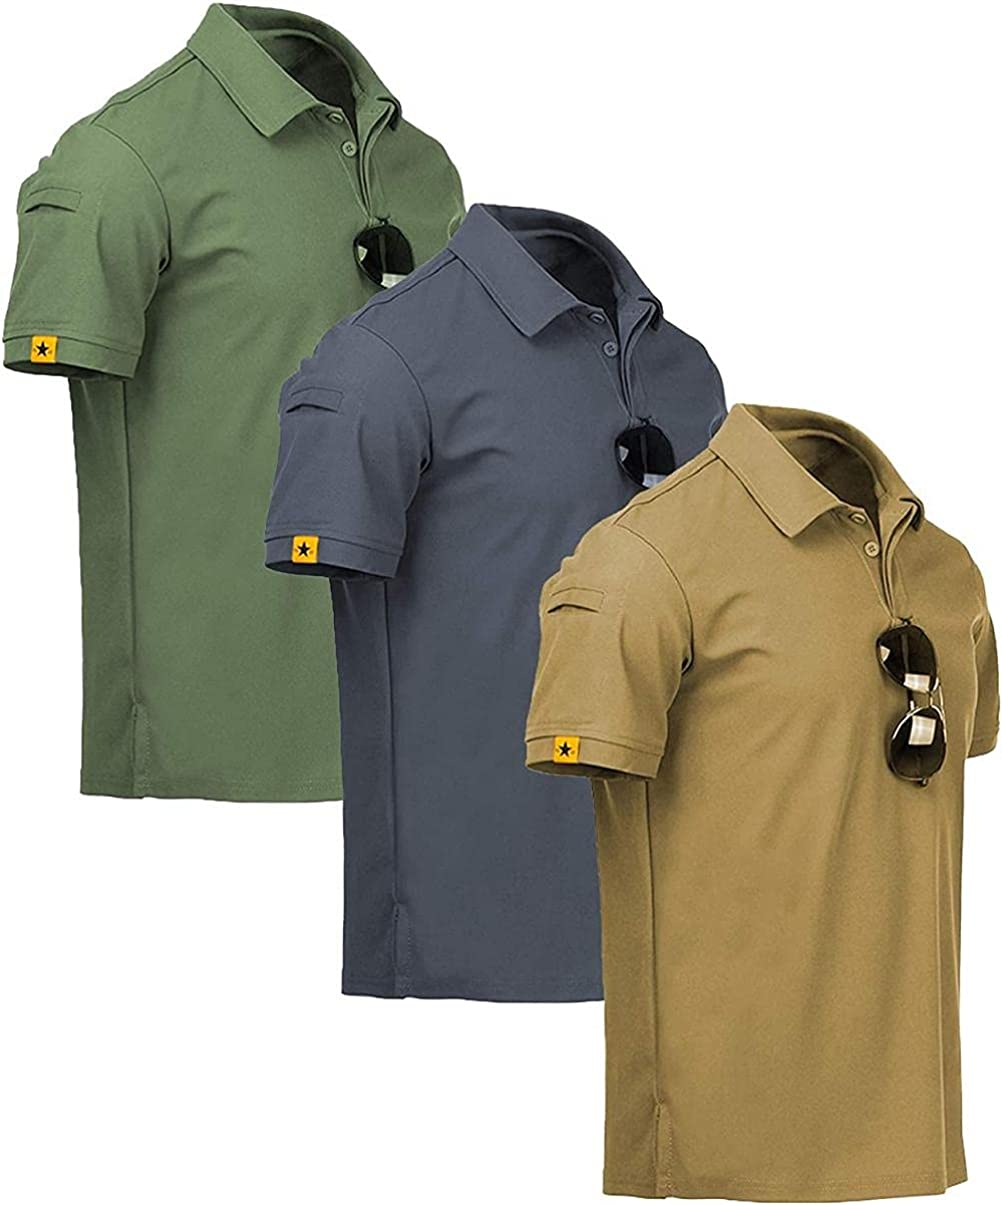 Depslee Men's Summer Direct sale of manufacturer Polo Shirt,Quick-Drying C Factory outlet Sweat-Absorbent